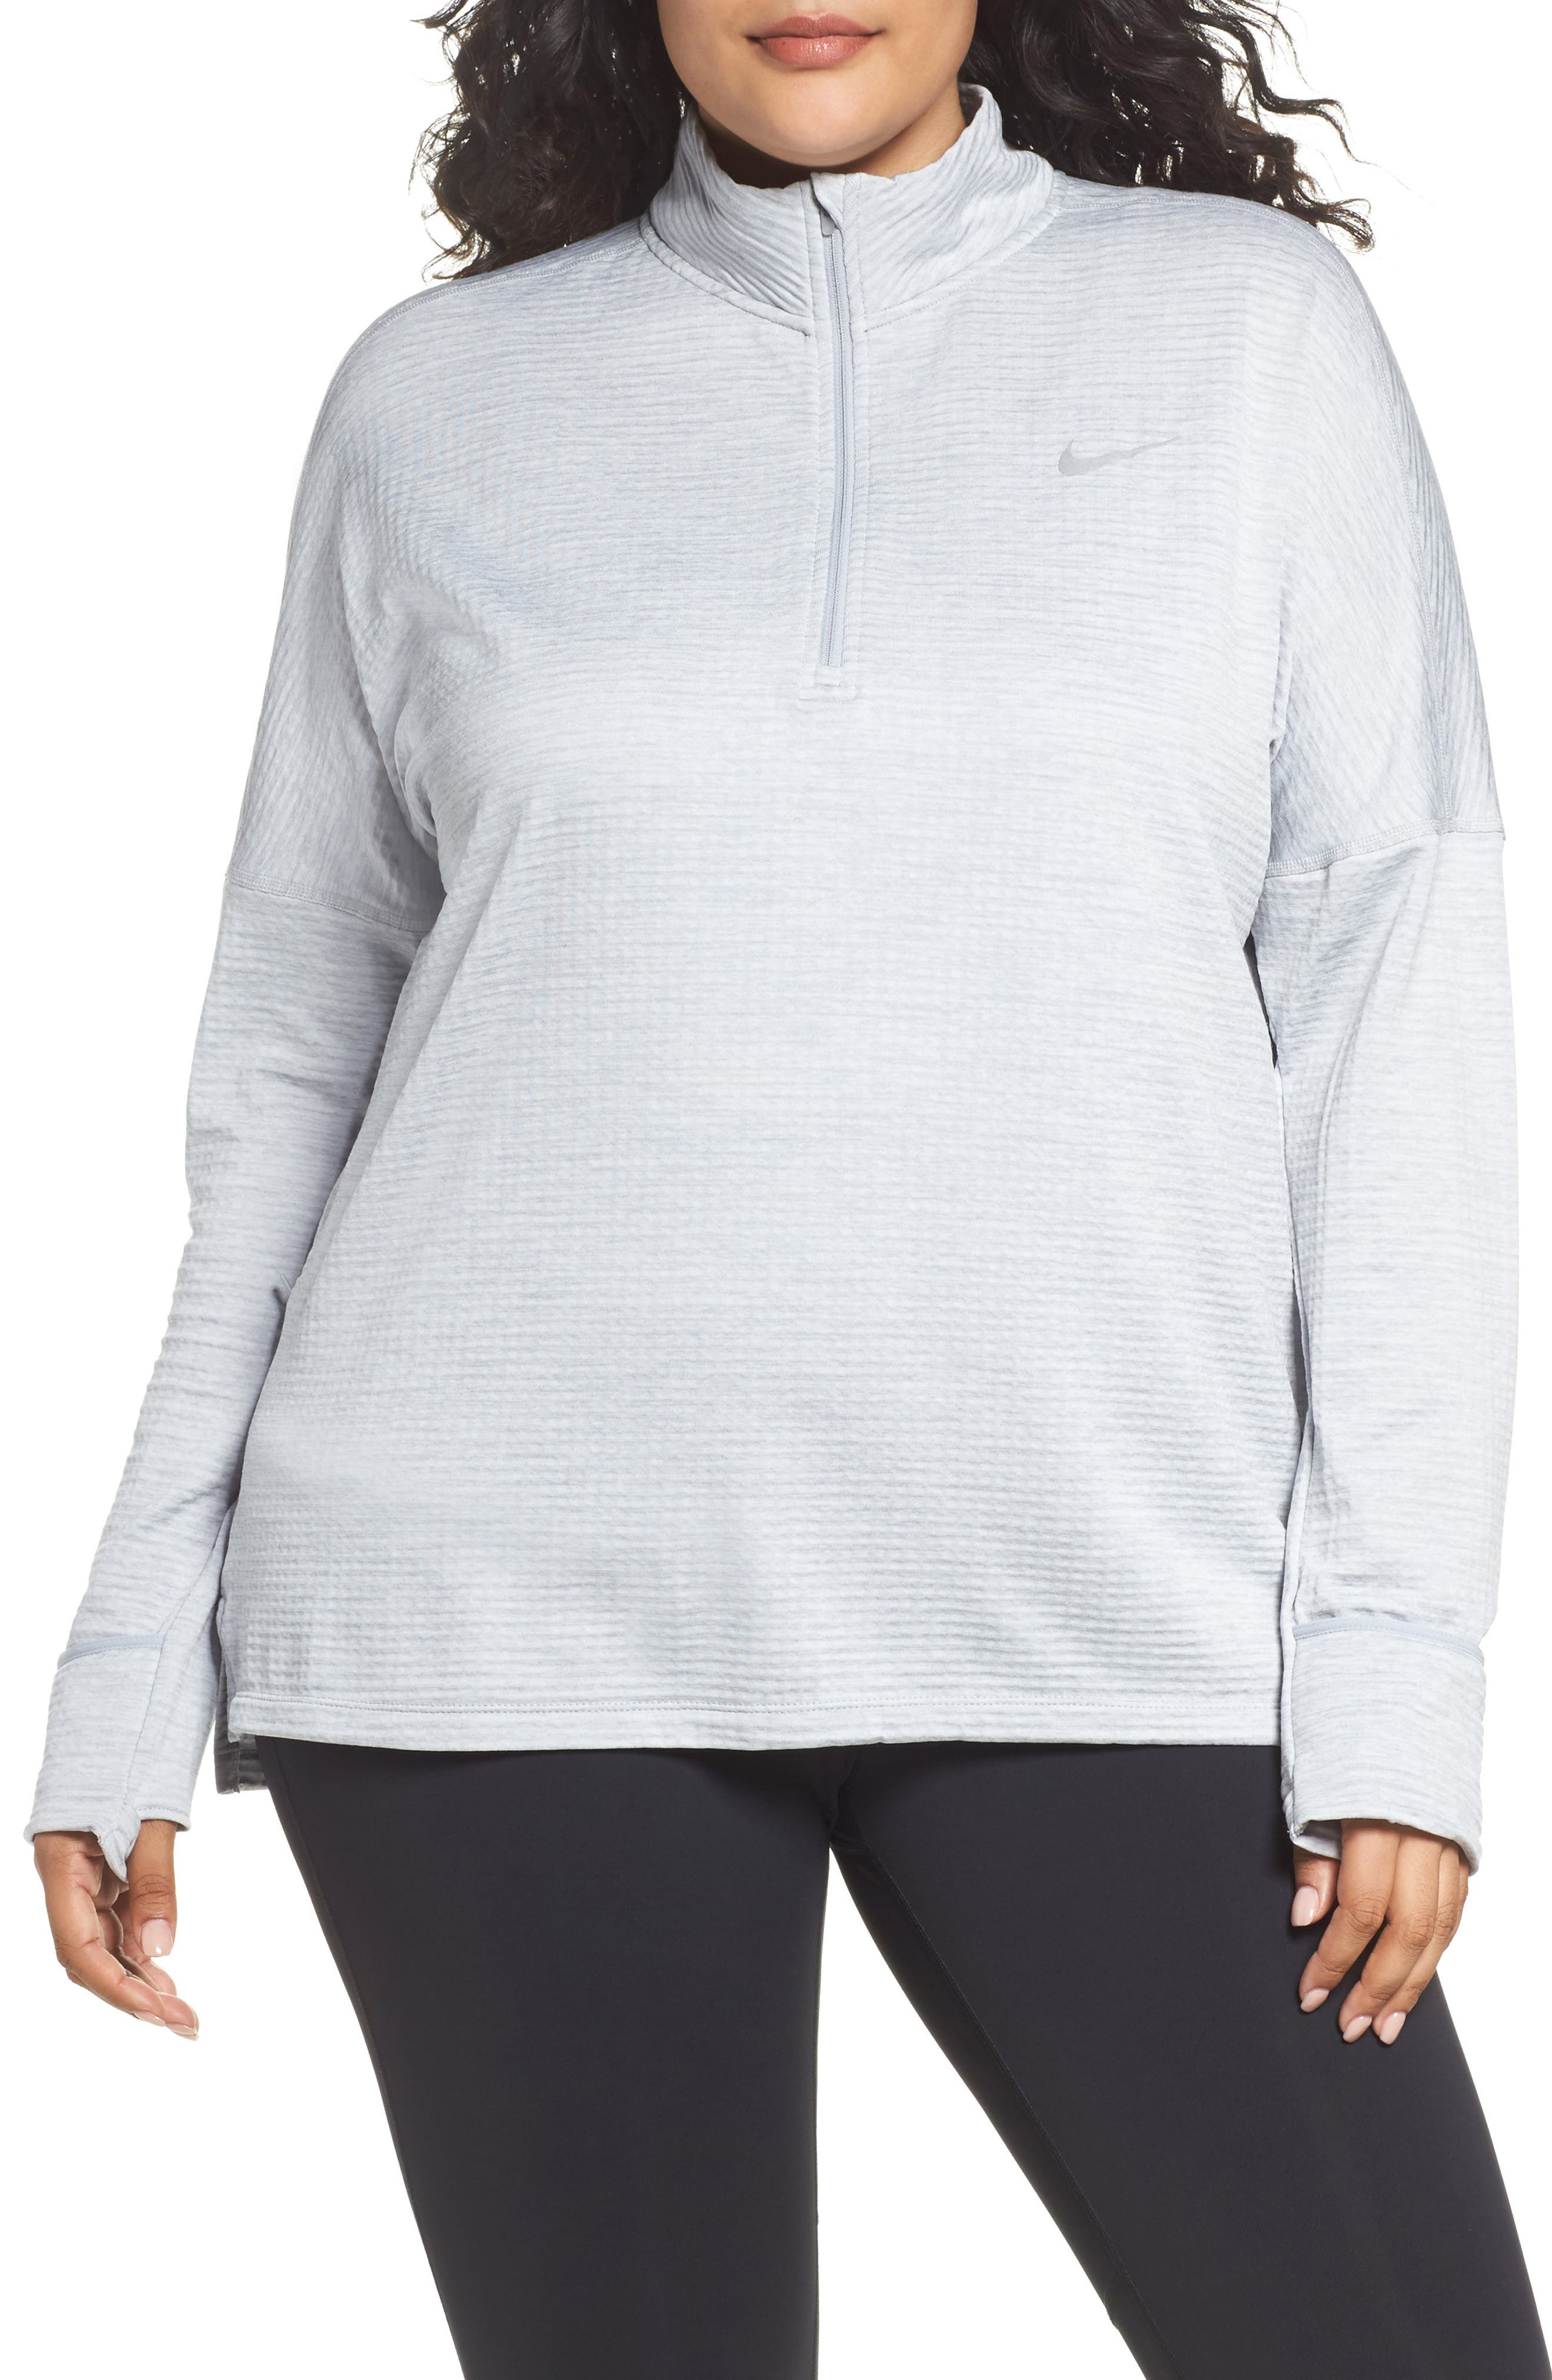 Sphere Element Long Sleeve Running Top,                             Main thumbnail 2, color,